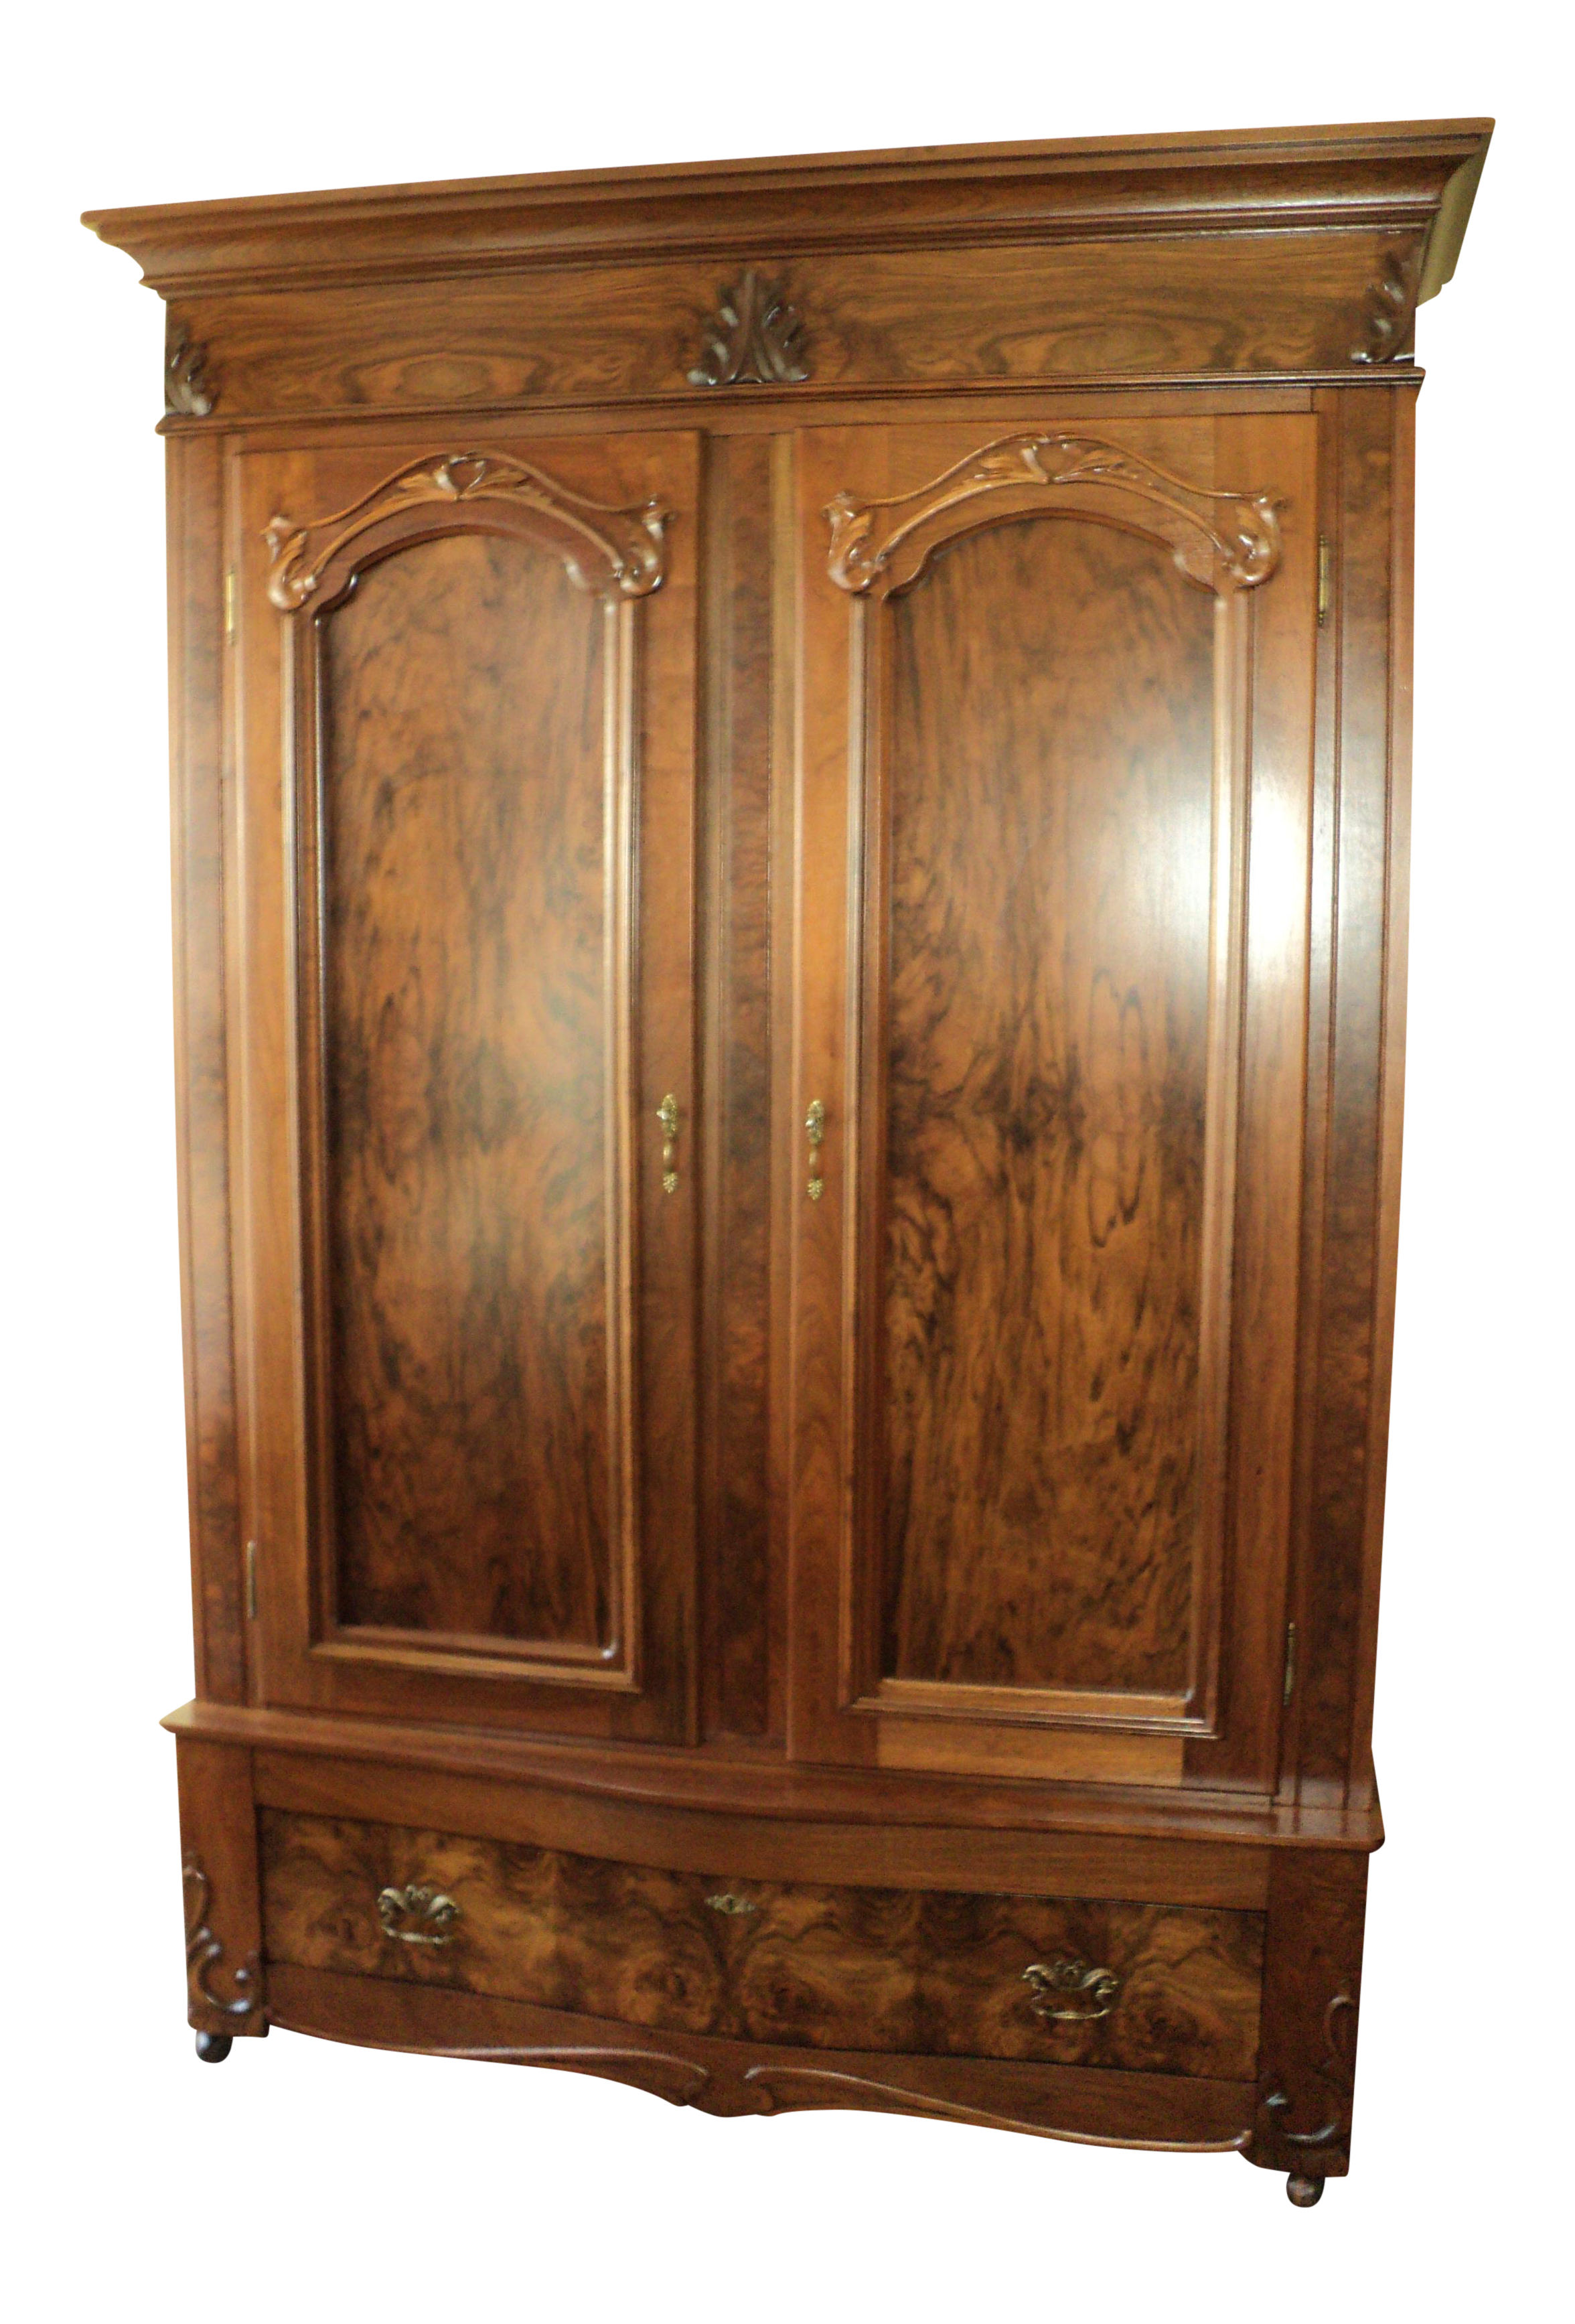 Antique Walnut 2 Door Wardrobe/Armoire  sc 1 st  Chairish & Antique Walnut 2 Door Wardrobe/Armoire | Chairish